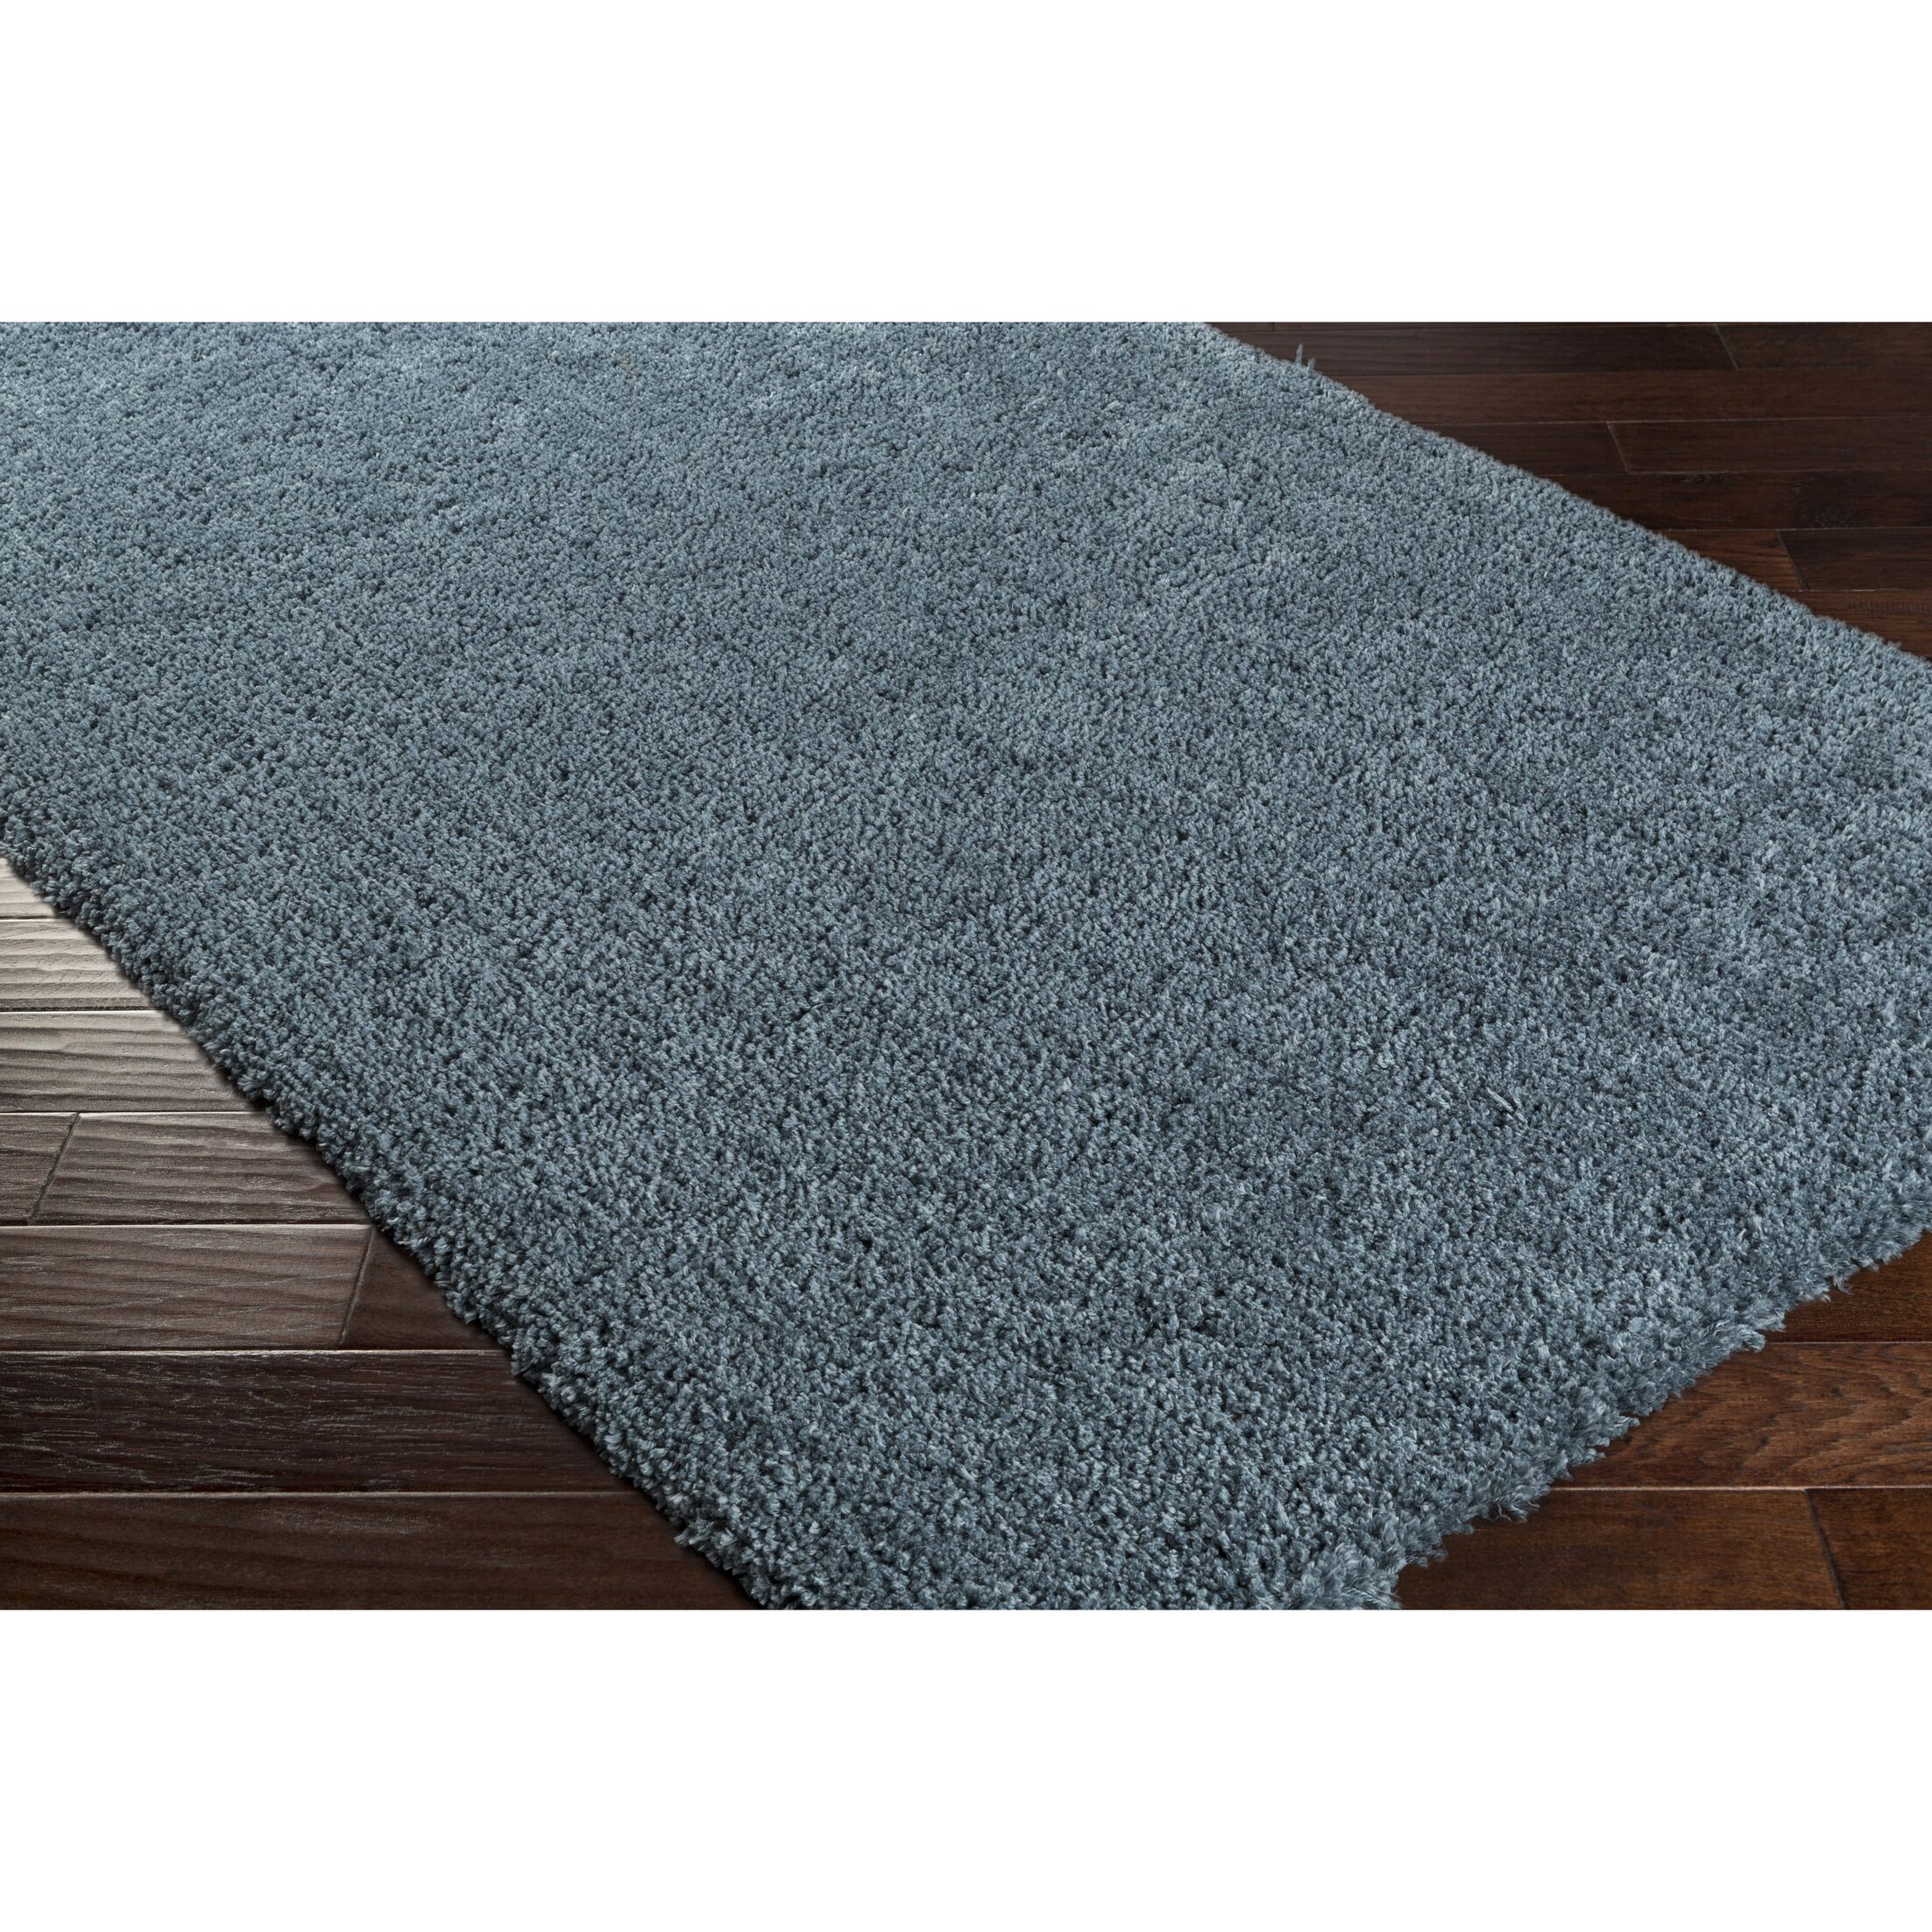 Martha Hand-Woven Blue Area Rug Rug Size: Runner 2'6